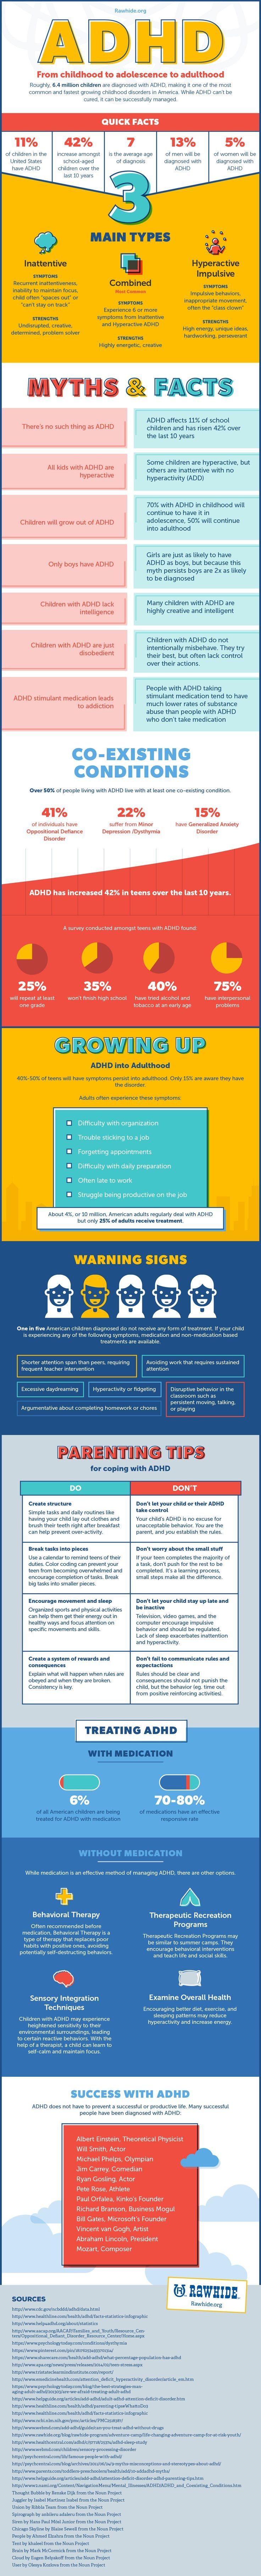 ADHD infographic put together by the team at Rawhide Boys Ranch. Everything from prevalence rates, types, warning signs, myths and facts, adult symptoms and parenting tips.